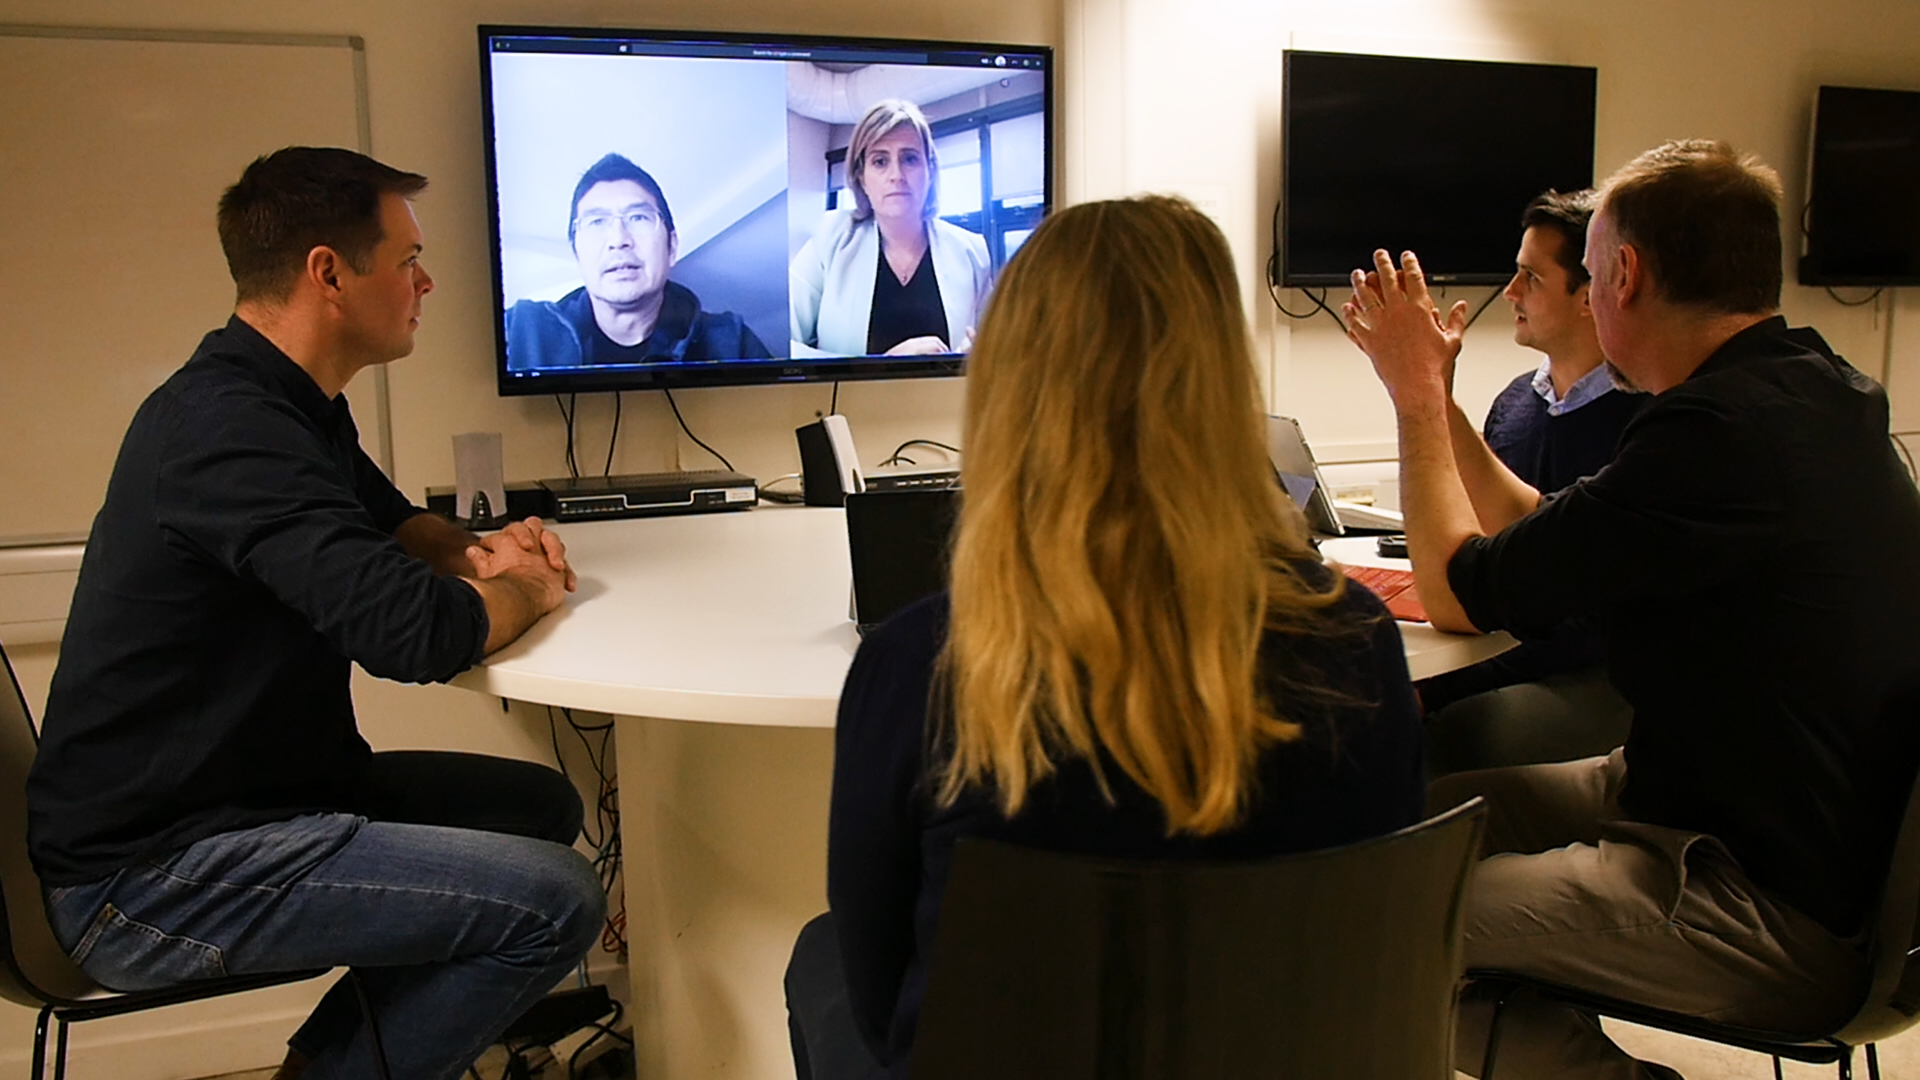 four people around the table video chatting to two people on Microsoft Teams